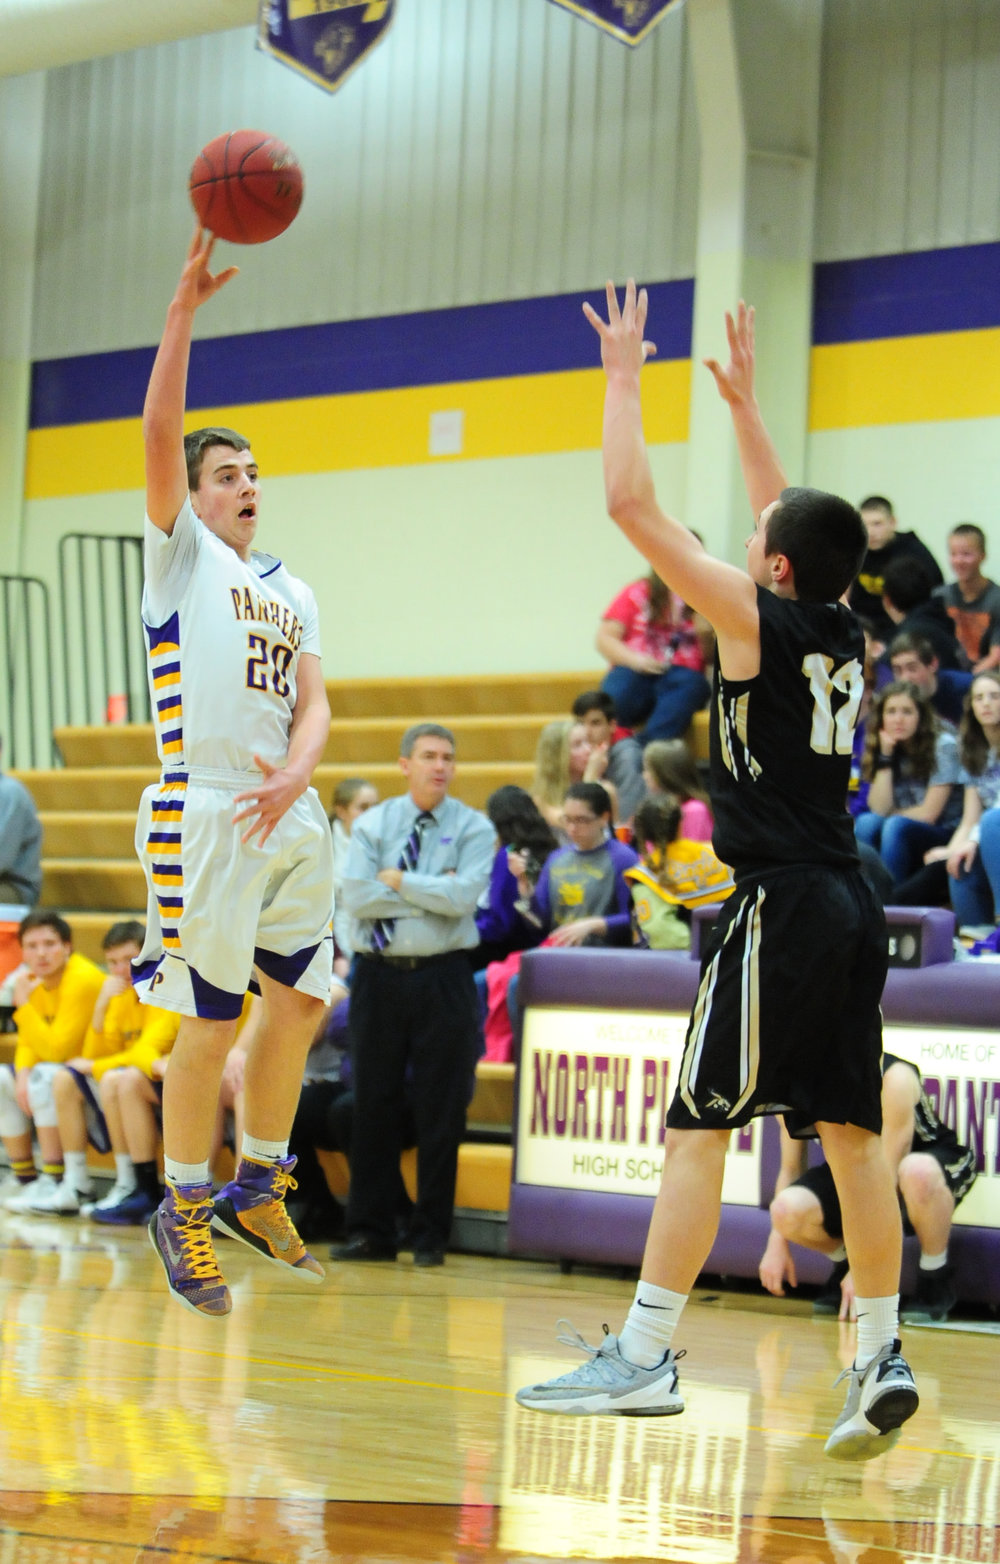 NICK INGRAM/Citizen photo North Platte sophomore Hunter Hendricks, left, jumps to make a pass over a Lathrop defender during a KCI Conference game Friday, Feb. 3 at North Platte High School in Dearborn, Mo.